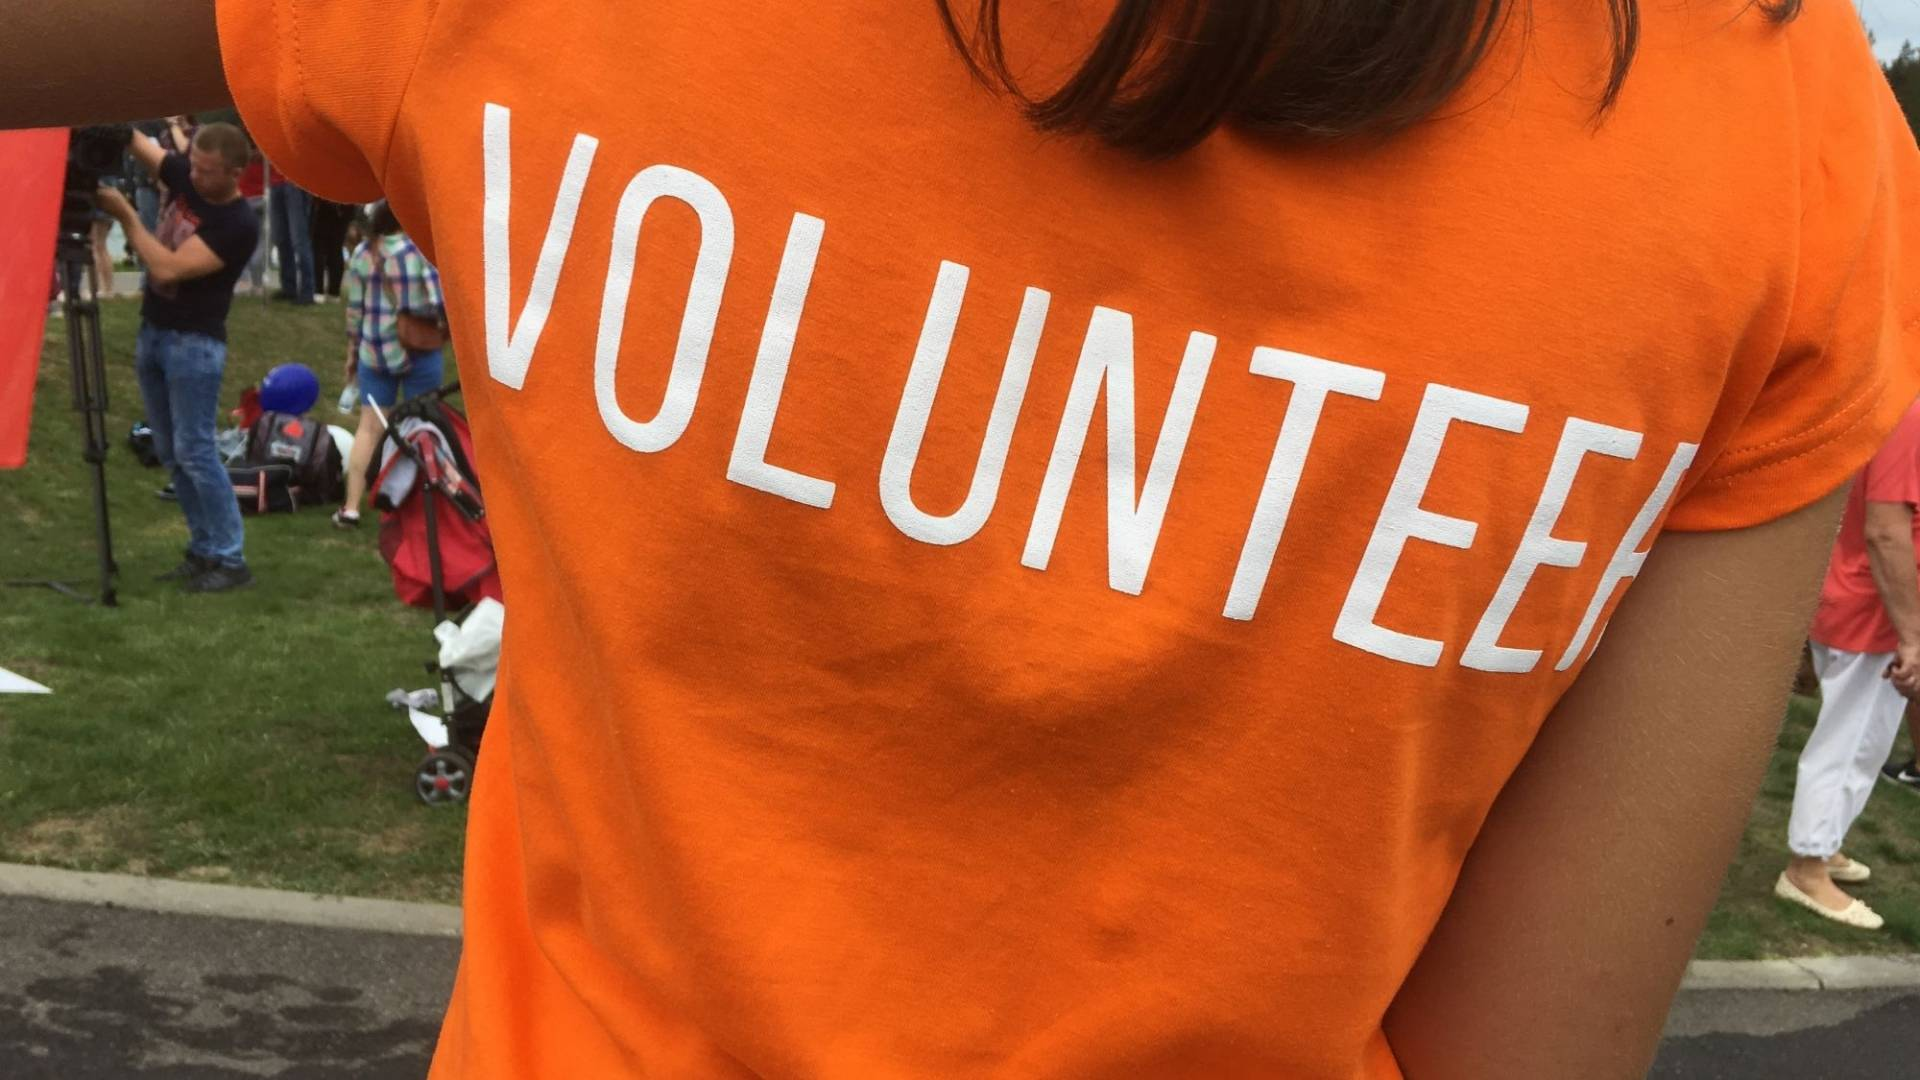 Voluntourism is not as altruistic as first believed.